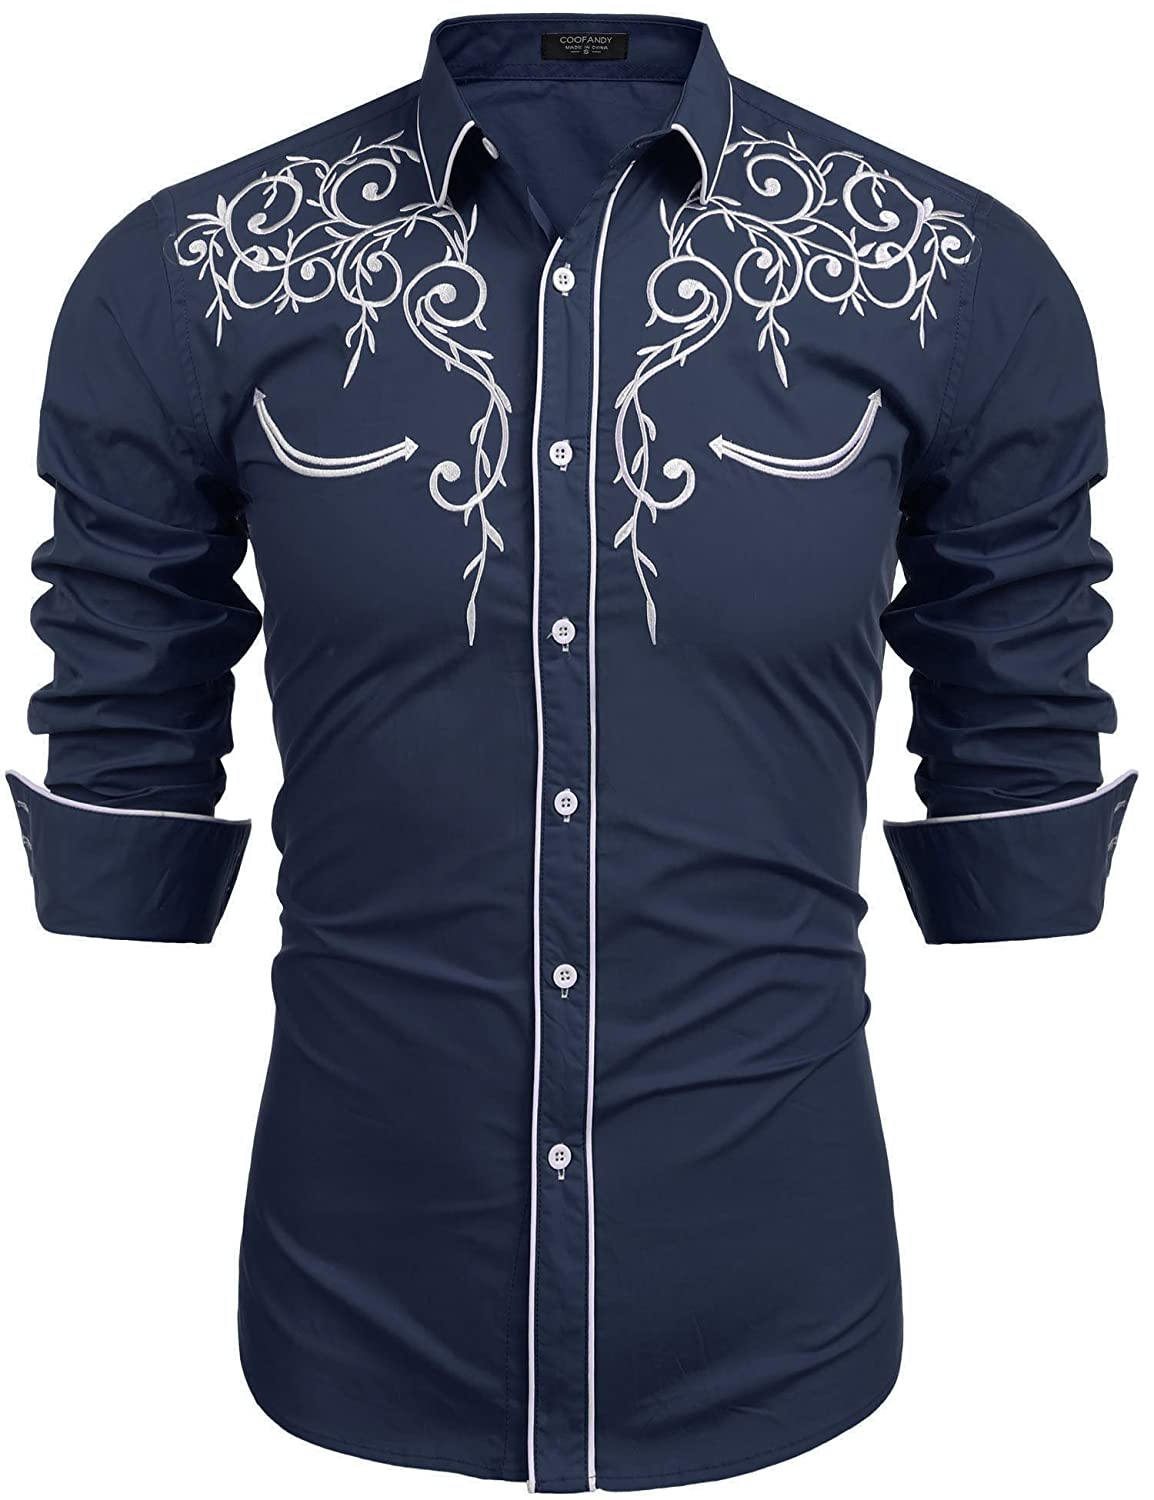 ddb52dde COOFANDY Men's Long Sleeve Embroidered Shirt Slim Fit Casual Button Down  Shirts at Amazon Men's Clothing store: